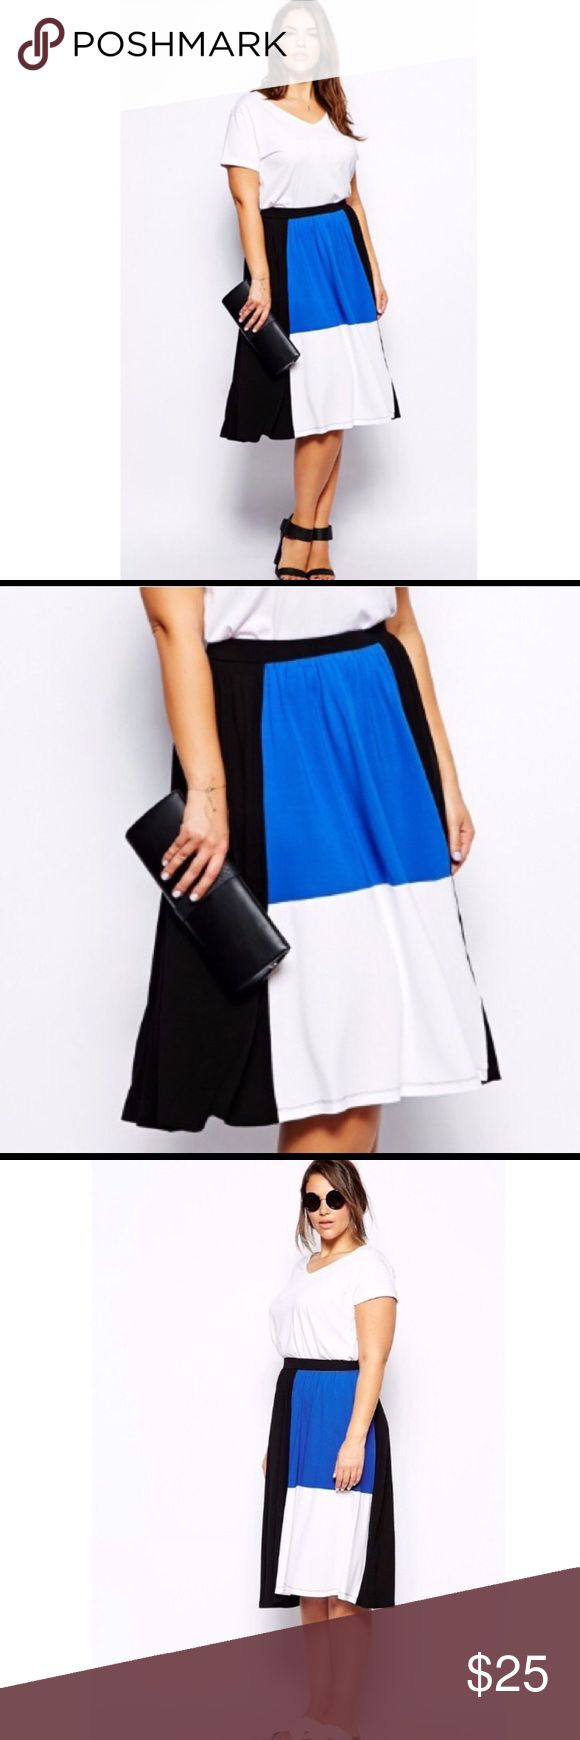 🆕ASOS Curve Color Block Midi Skirt🆕 Brand new with tags, elastic waist, soft stretchy material. Price is firm. ASOS Curve Skirts Midi